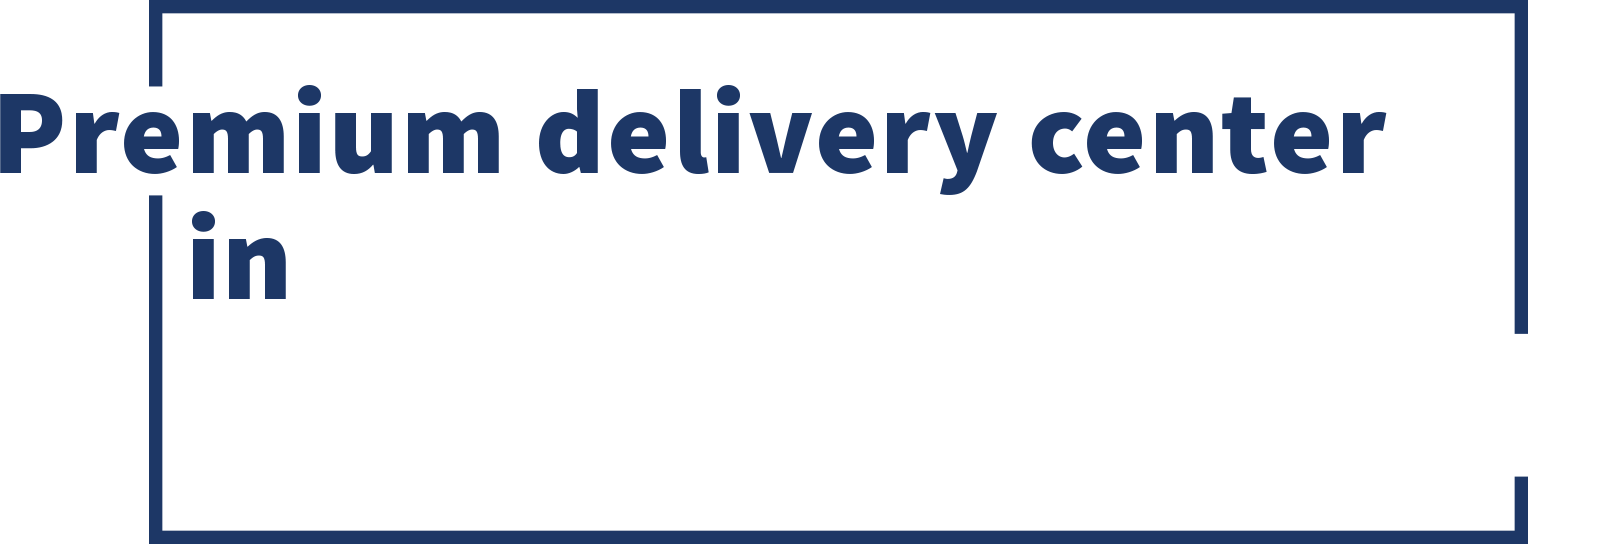 Premium delivery center in Melbourne, Manila & Santo Domingo